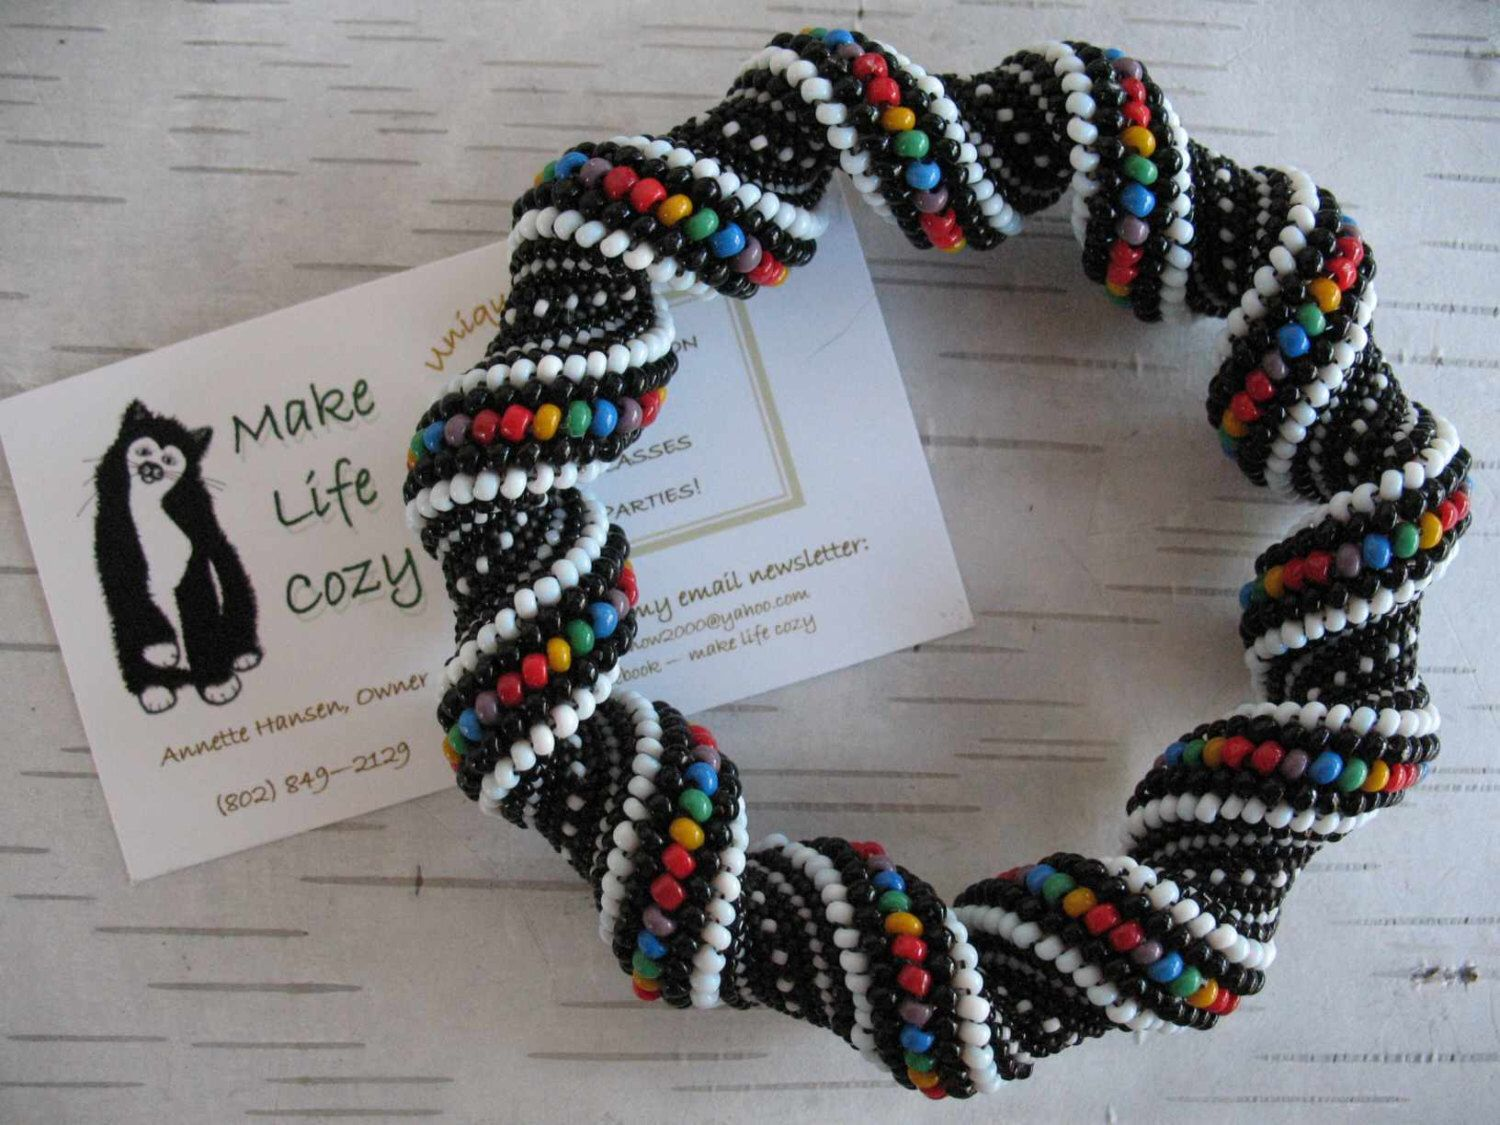 Rainbow Cellini Spiral Bracelet in Glass Seed Beads by MakeLifeCozy on Etsy https://www.etsy.com/listing/130479604/rainbow-cellini-spiral-bracelet-in-glass